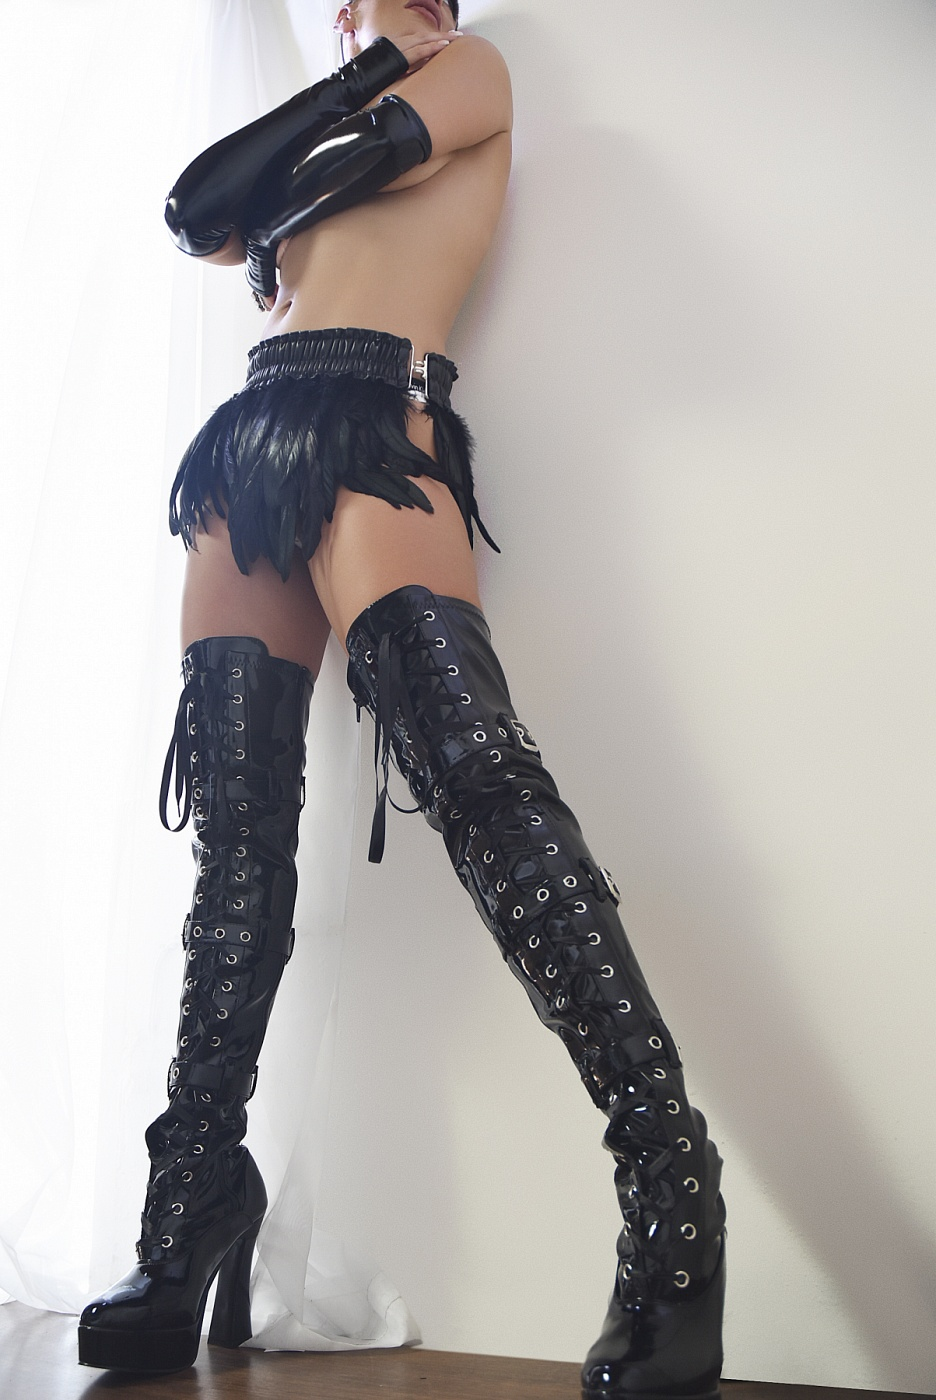 Luxury Dominatrix-Aratrix Paige